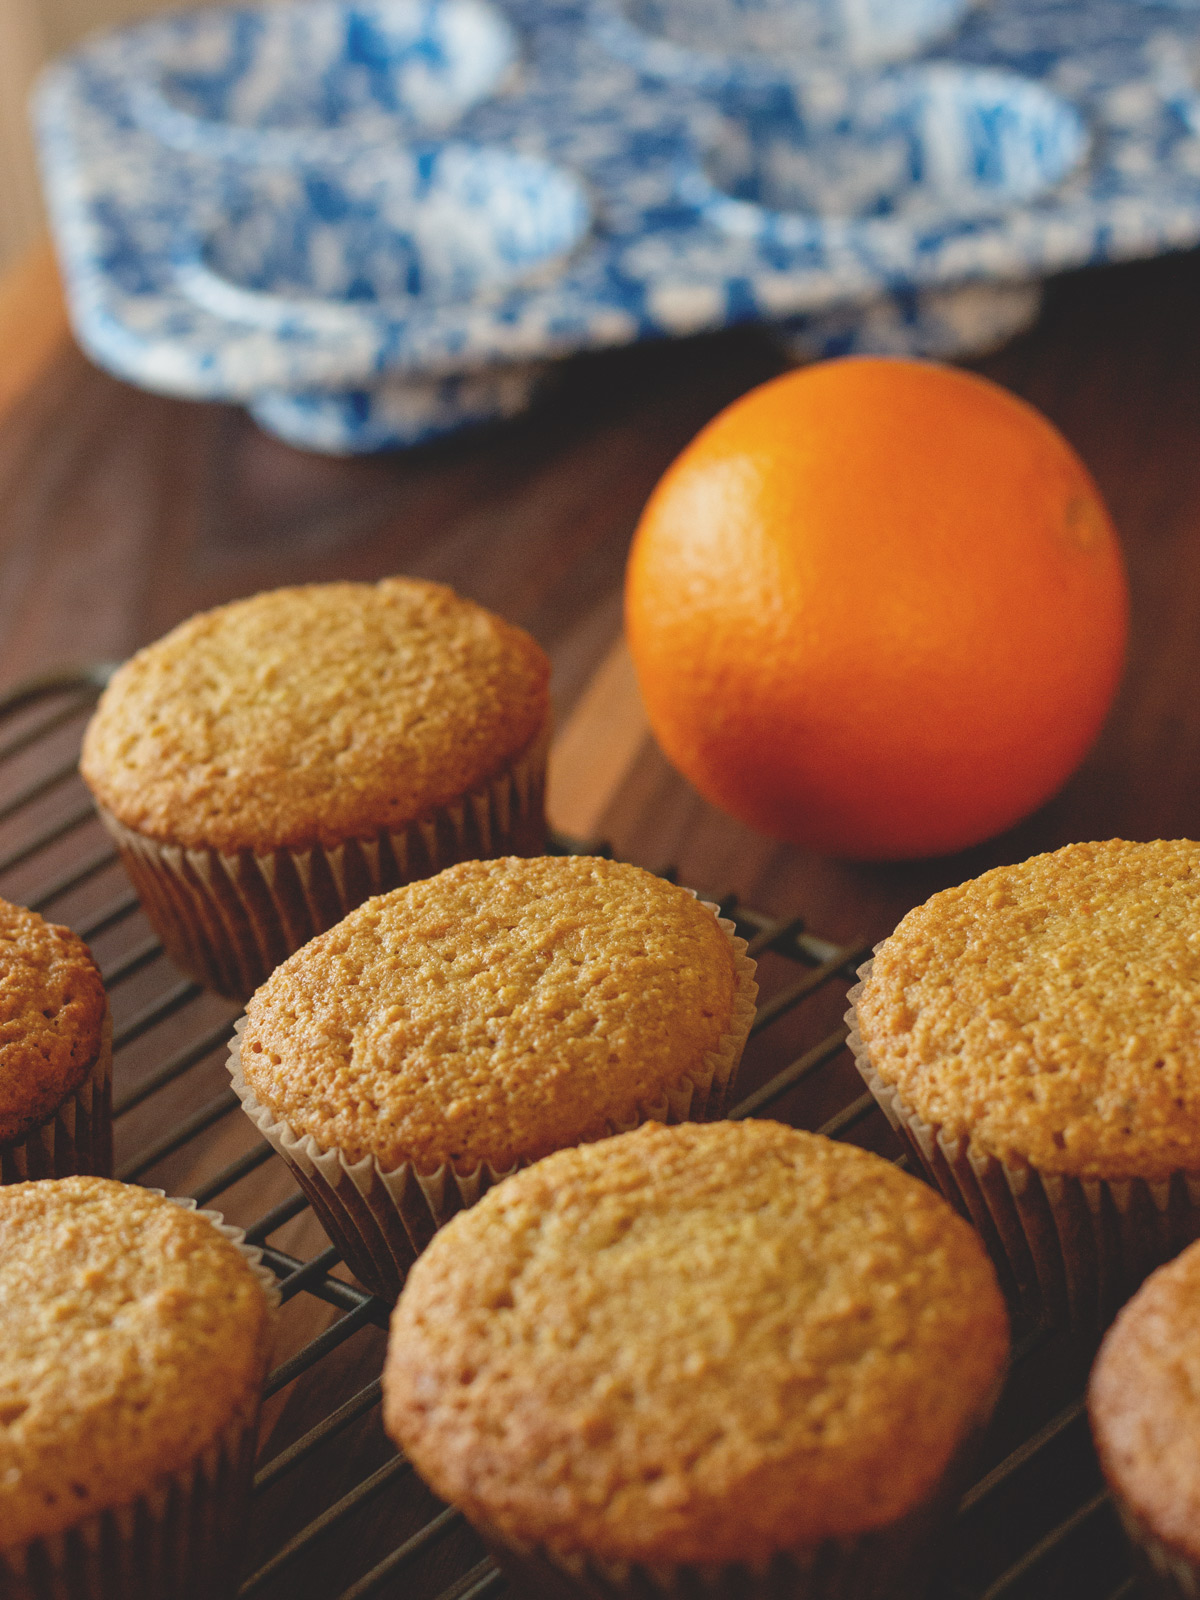 These Orange Muffins are a delicious breakfast muffins, made from scratch with orange juice and orange zest.